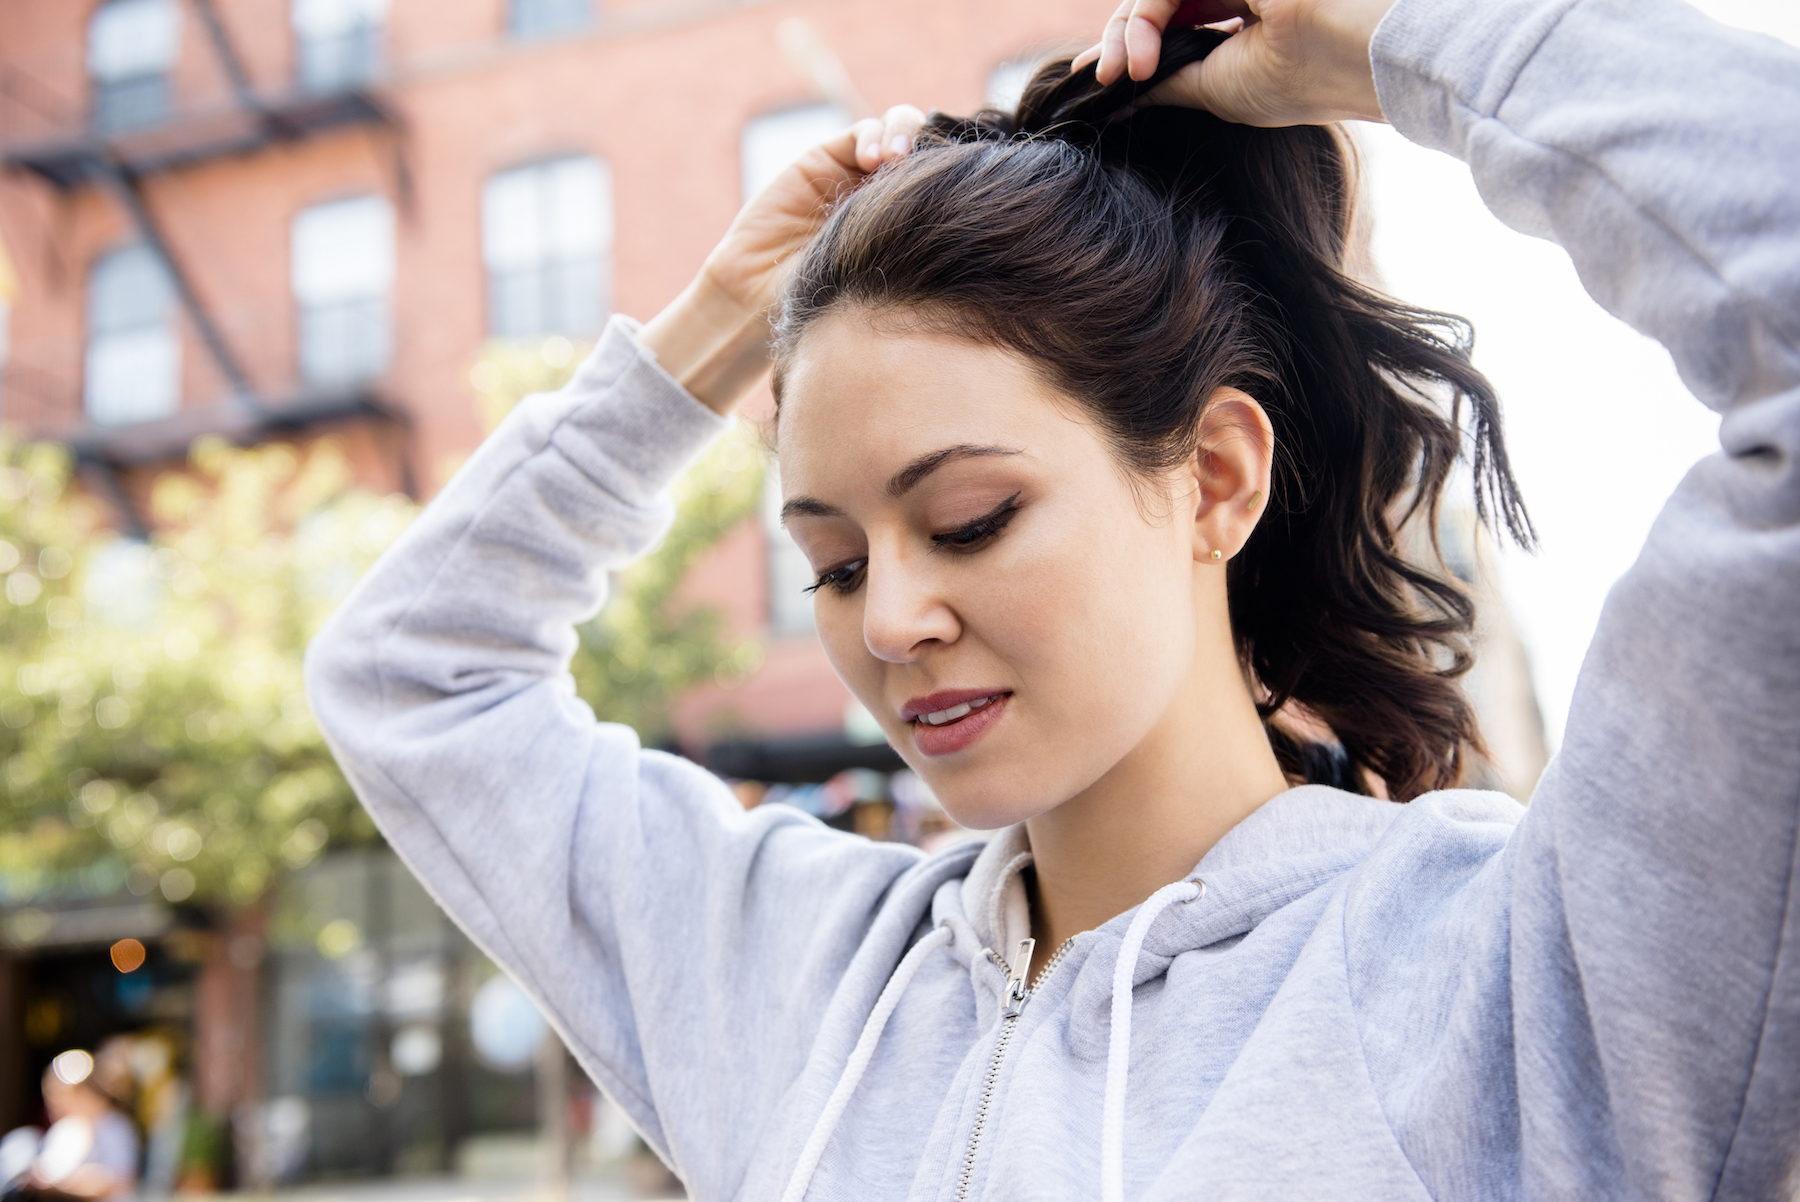 Woman With Ponytail in sweatshirt outside